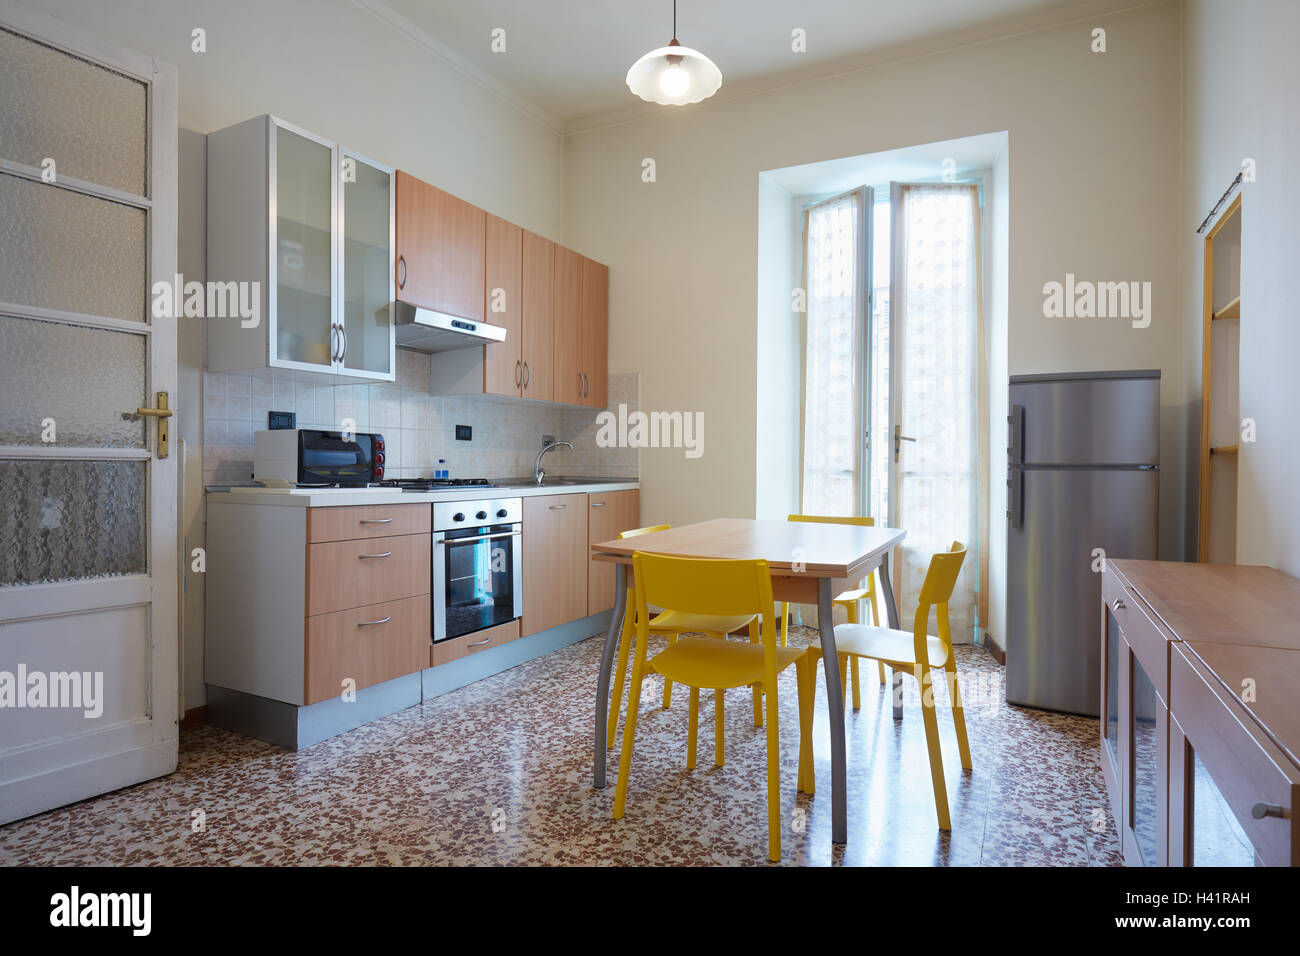 Simple kitchen interior in normal apartment - Stock Image